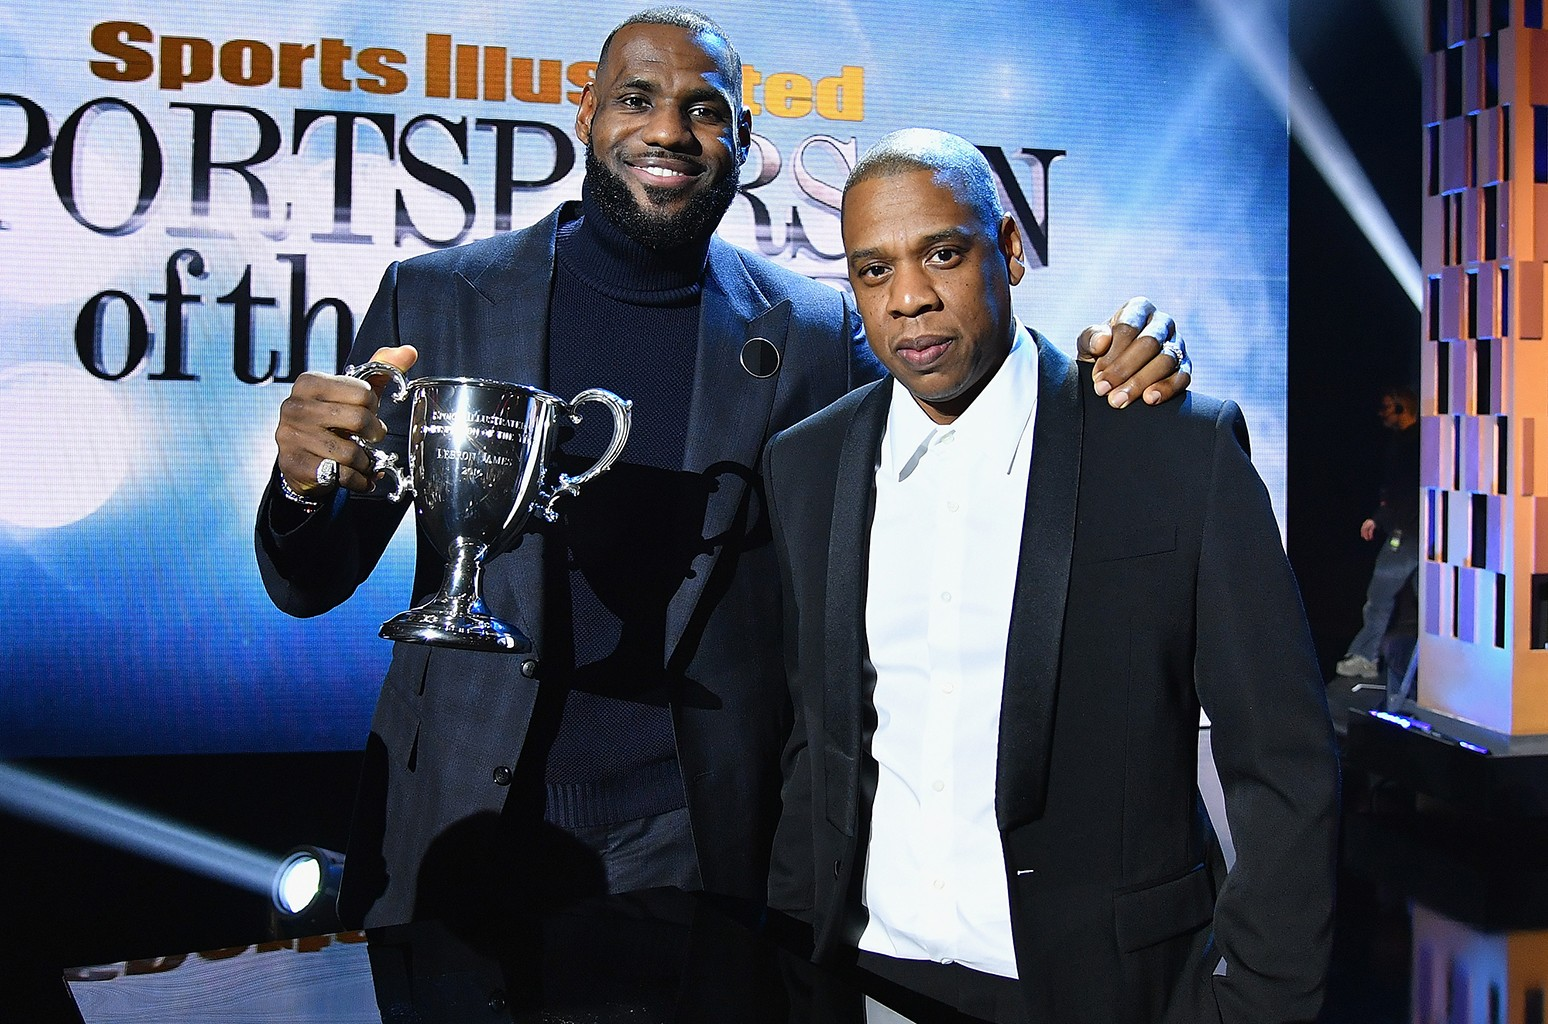 LeBron James and Jay Z